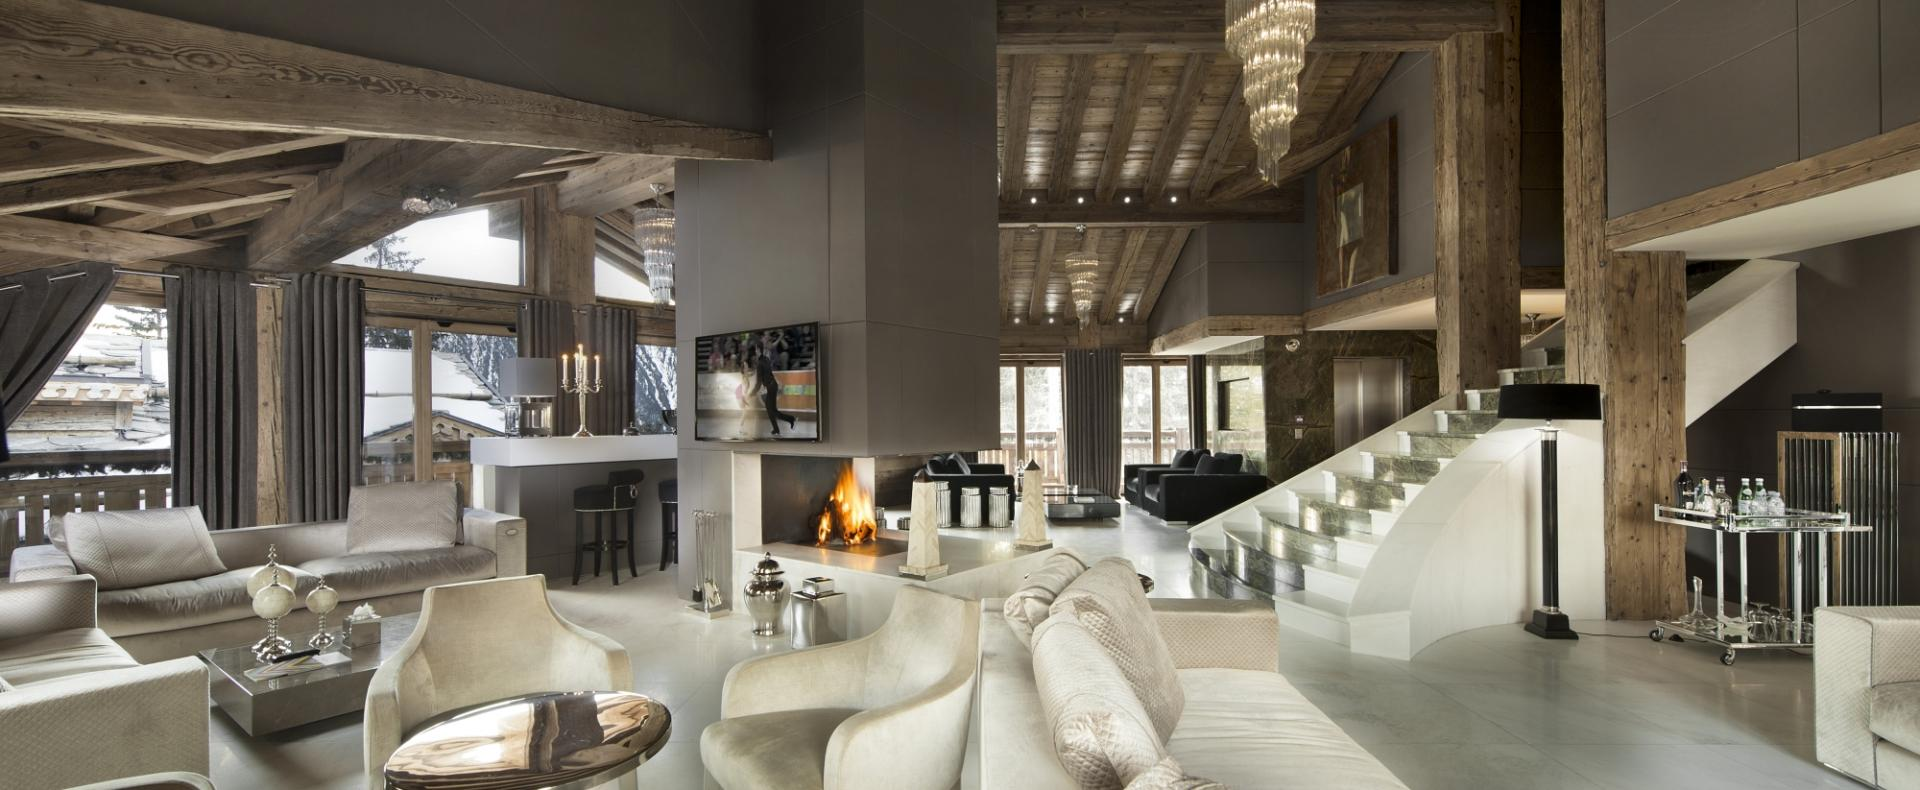 Chalet tahoe ski courchevel 1850 france ultimate luxury for Interieur chalet